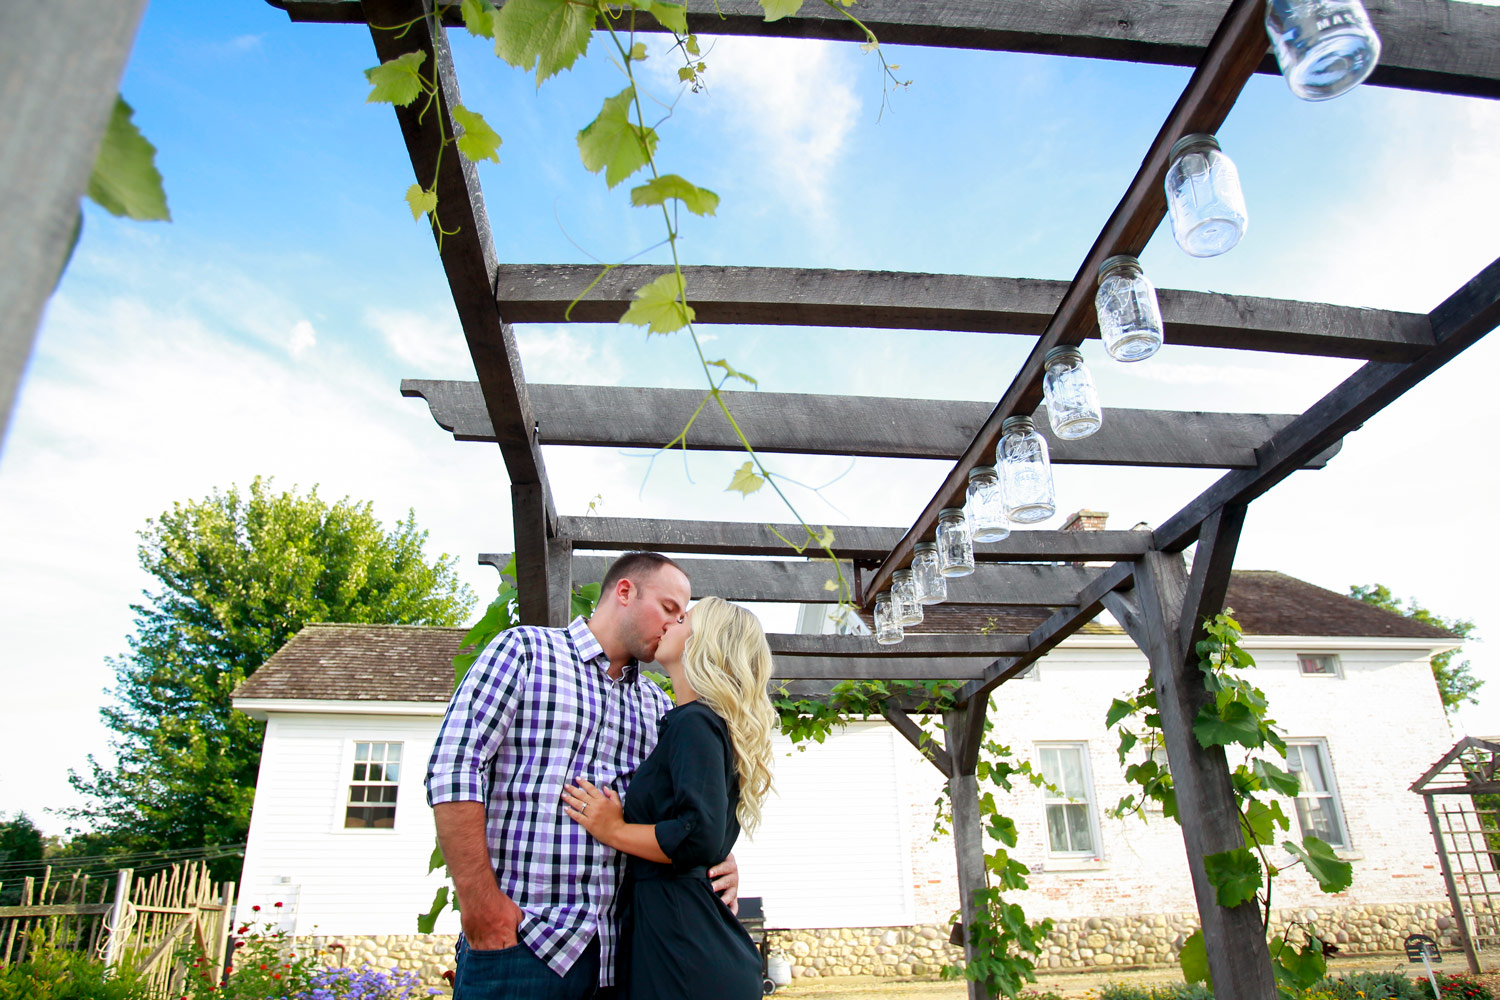 st-charles-campton-hills-engagement-session-fox-valley-kane-country-tri-cities-ruthie-hauge-photography.jpg